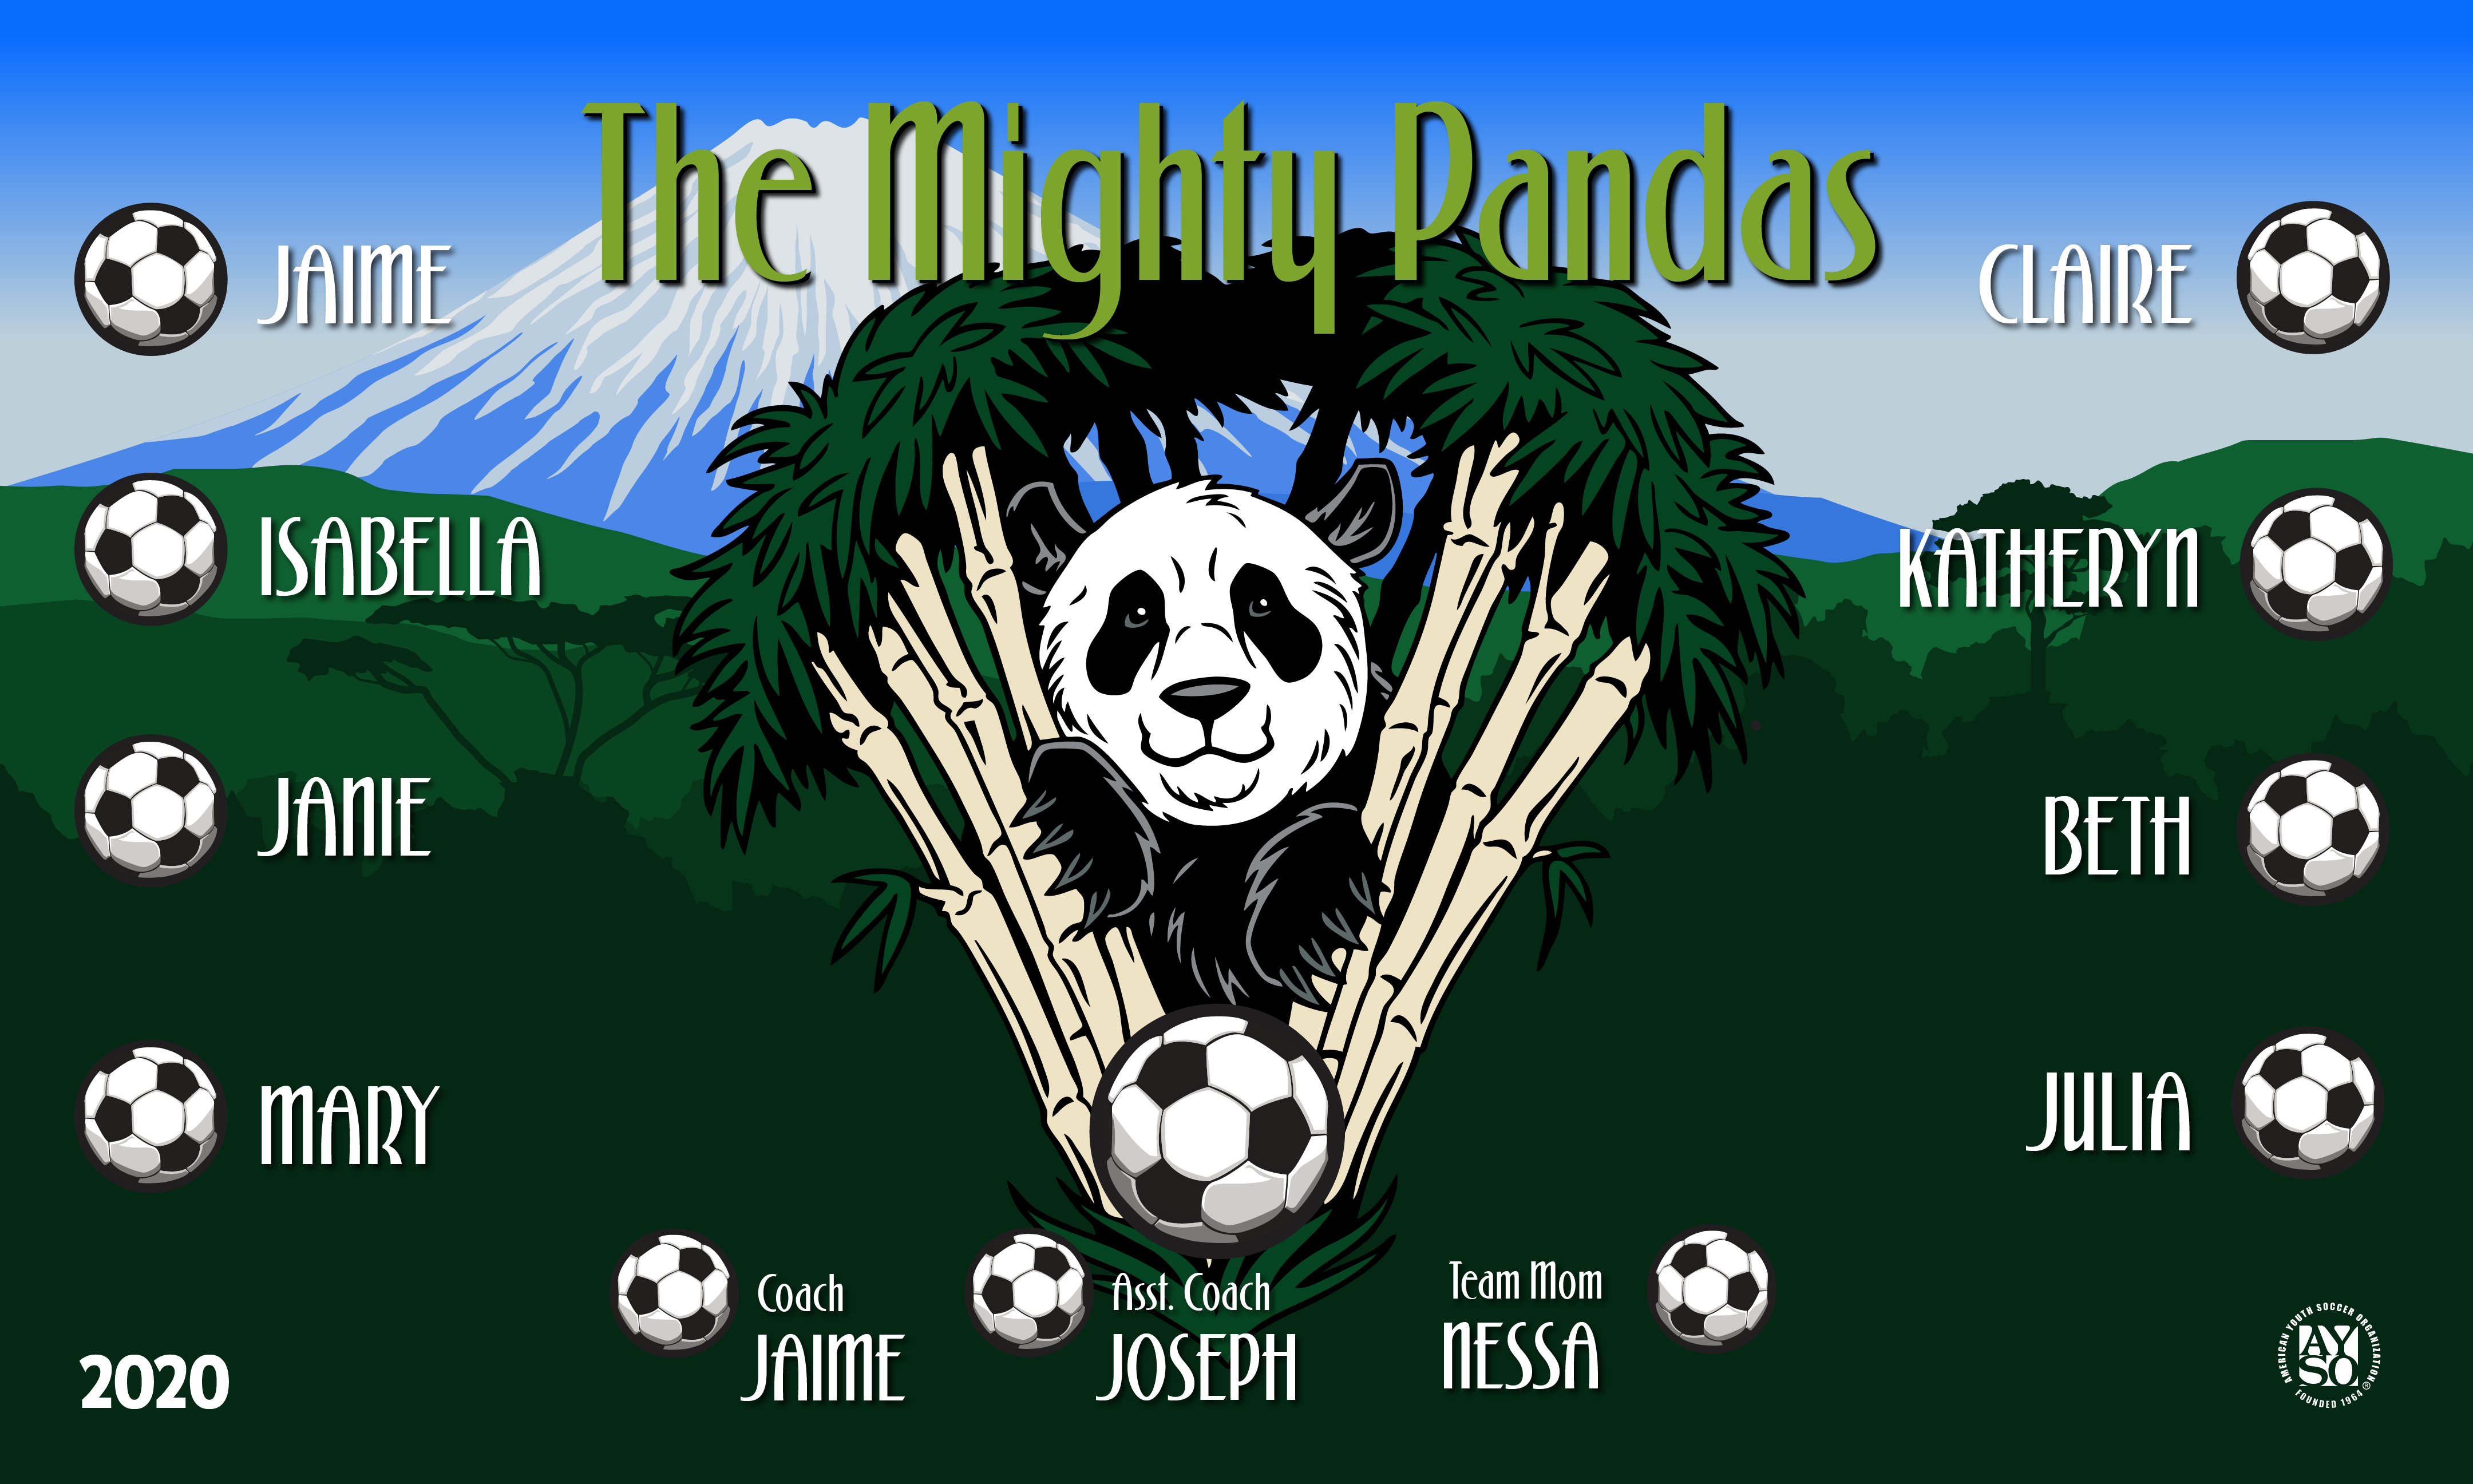 B2682 The Mighty Pandas 3x5 Banners